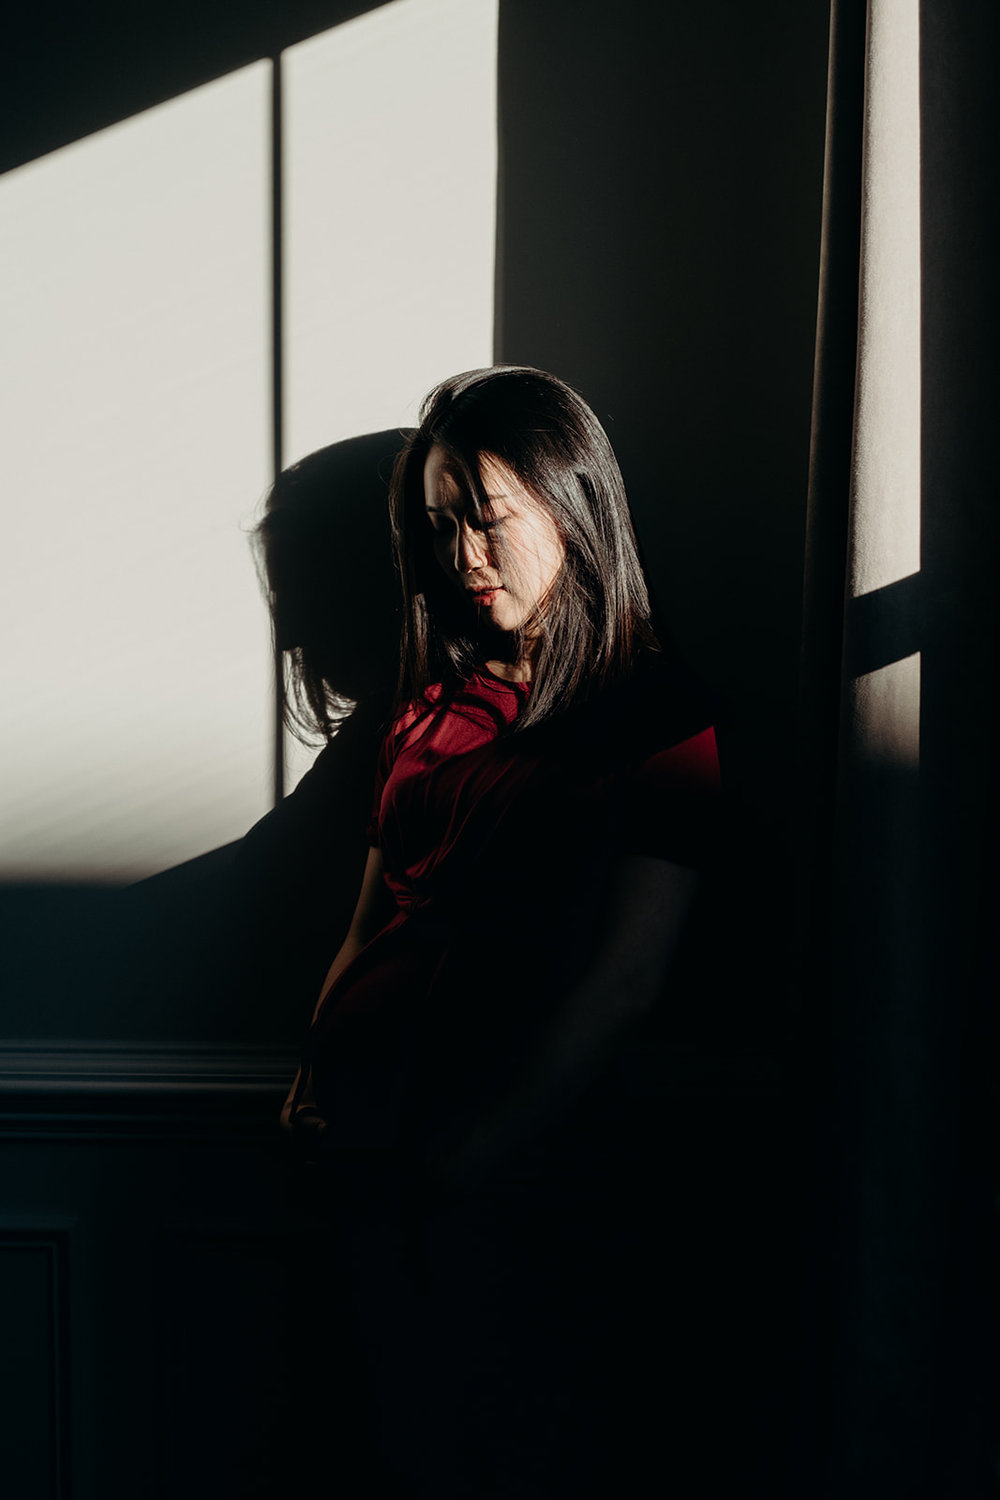 An expectant mother looks down at her baby bump hiding in the shadows while her face is illuminated by the light.